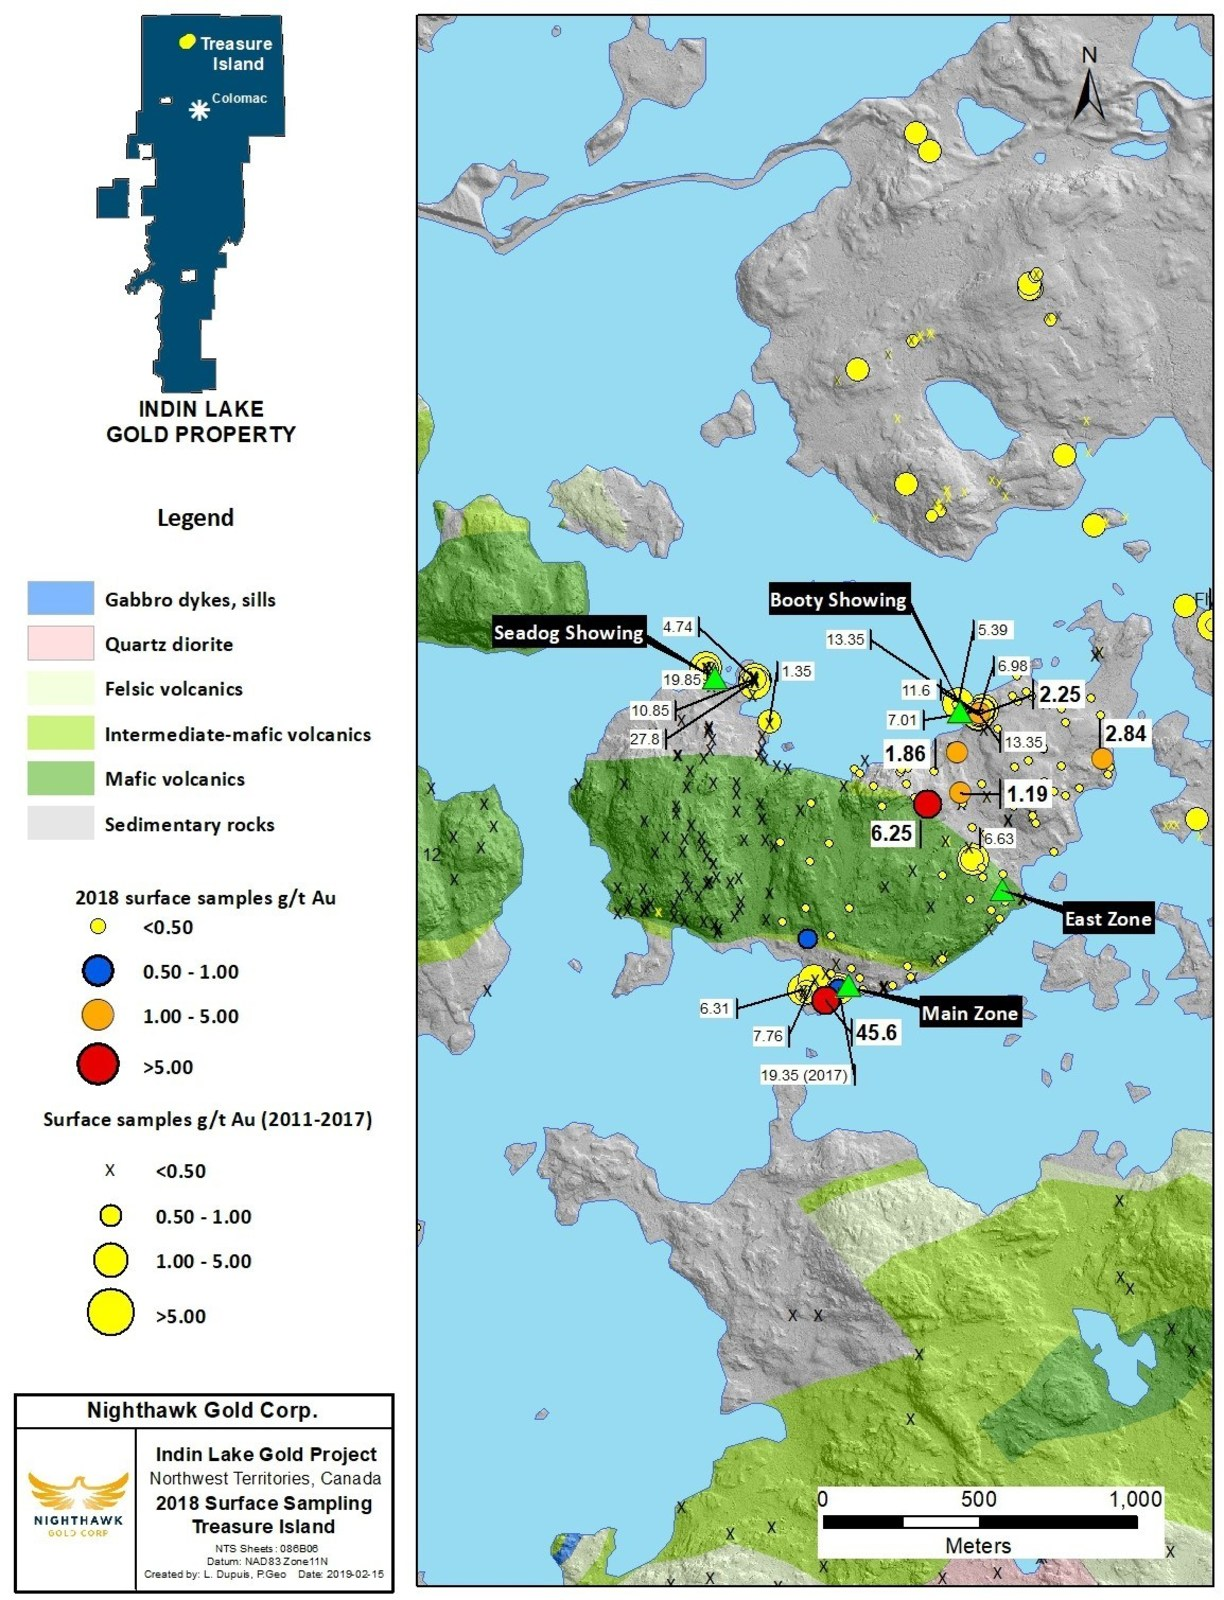 Figure 2. Treasure Island Sample Location Map and Select Surface Sample Results